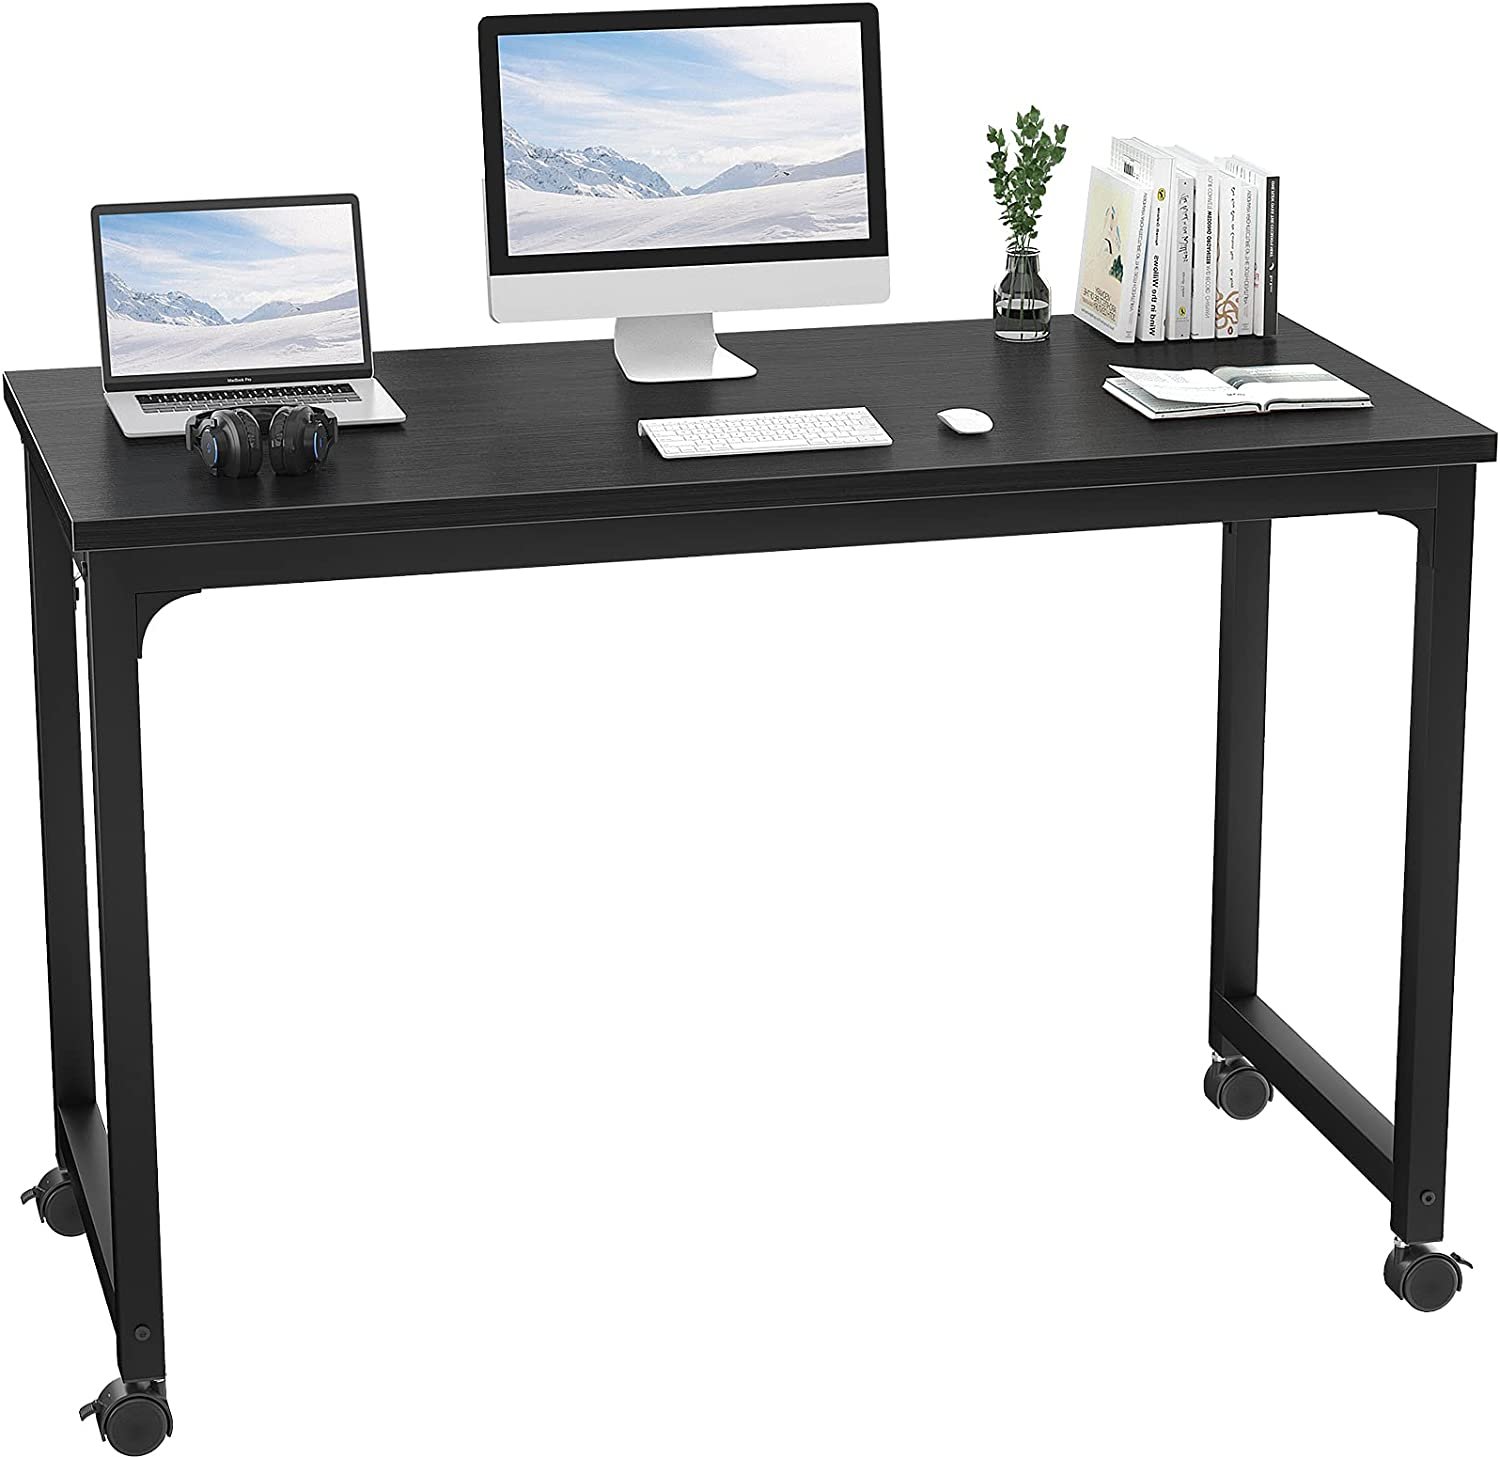 Foxemart Rolling Desks with Wheels, 47 Inch Portable Computer Desk with Locking Caster, Modern Mobile Writing Study Home Office Desk, Movable Sturdy Laptop Rolling Table, Black